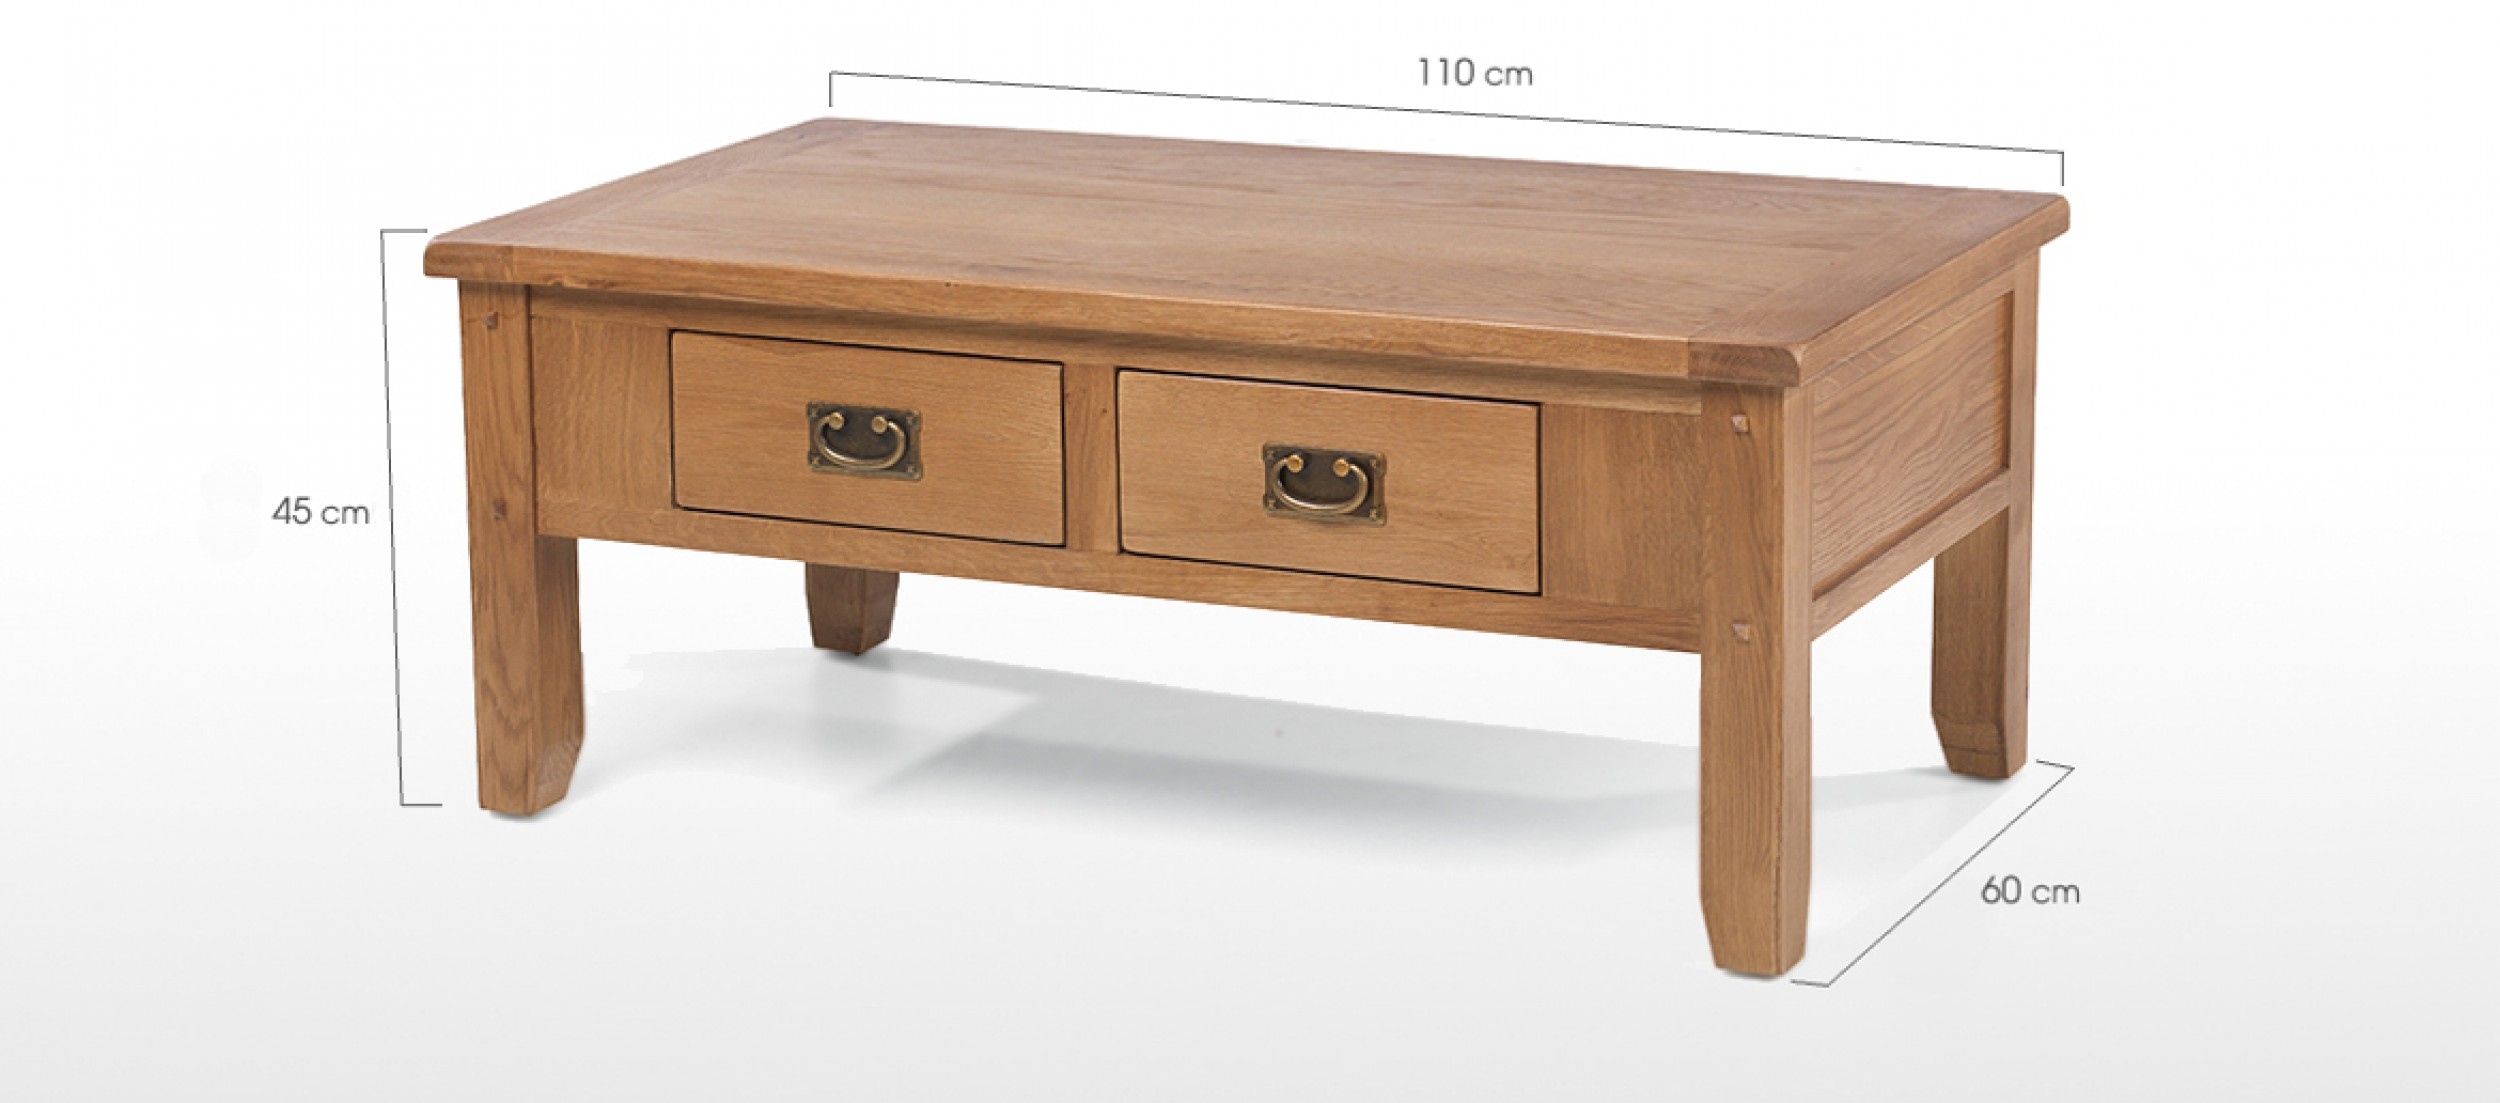 Rustic oak 2 drawer coffee table quercus living Coffee table drawers